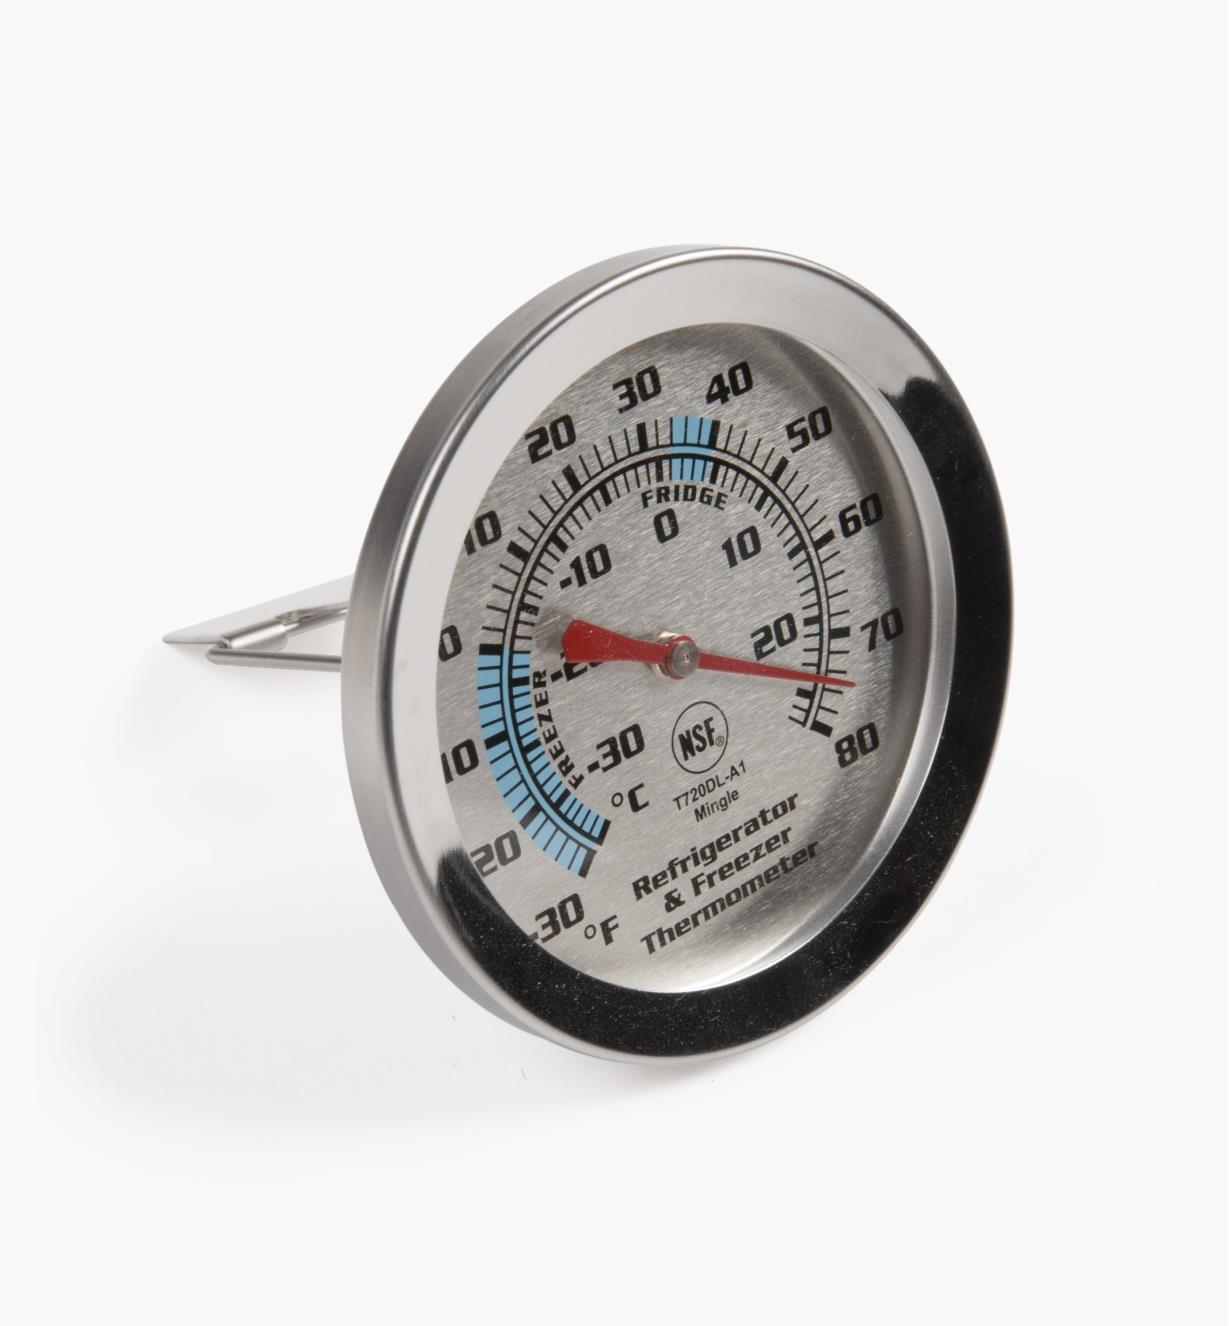 FT124 - Refrigerator/Freezer Thermometer